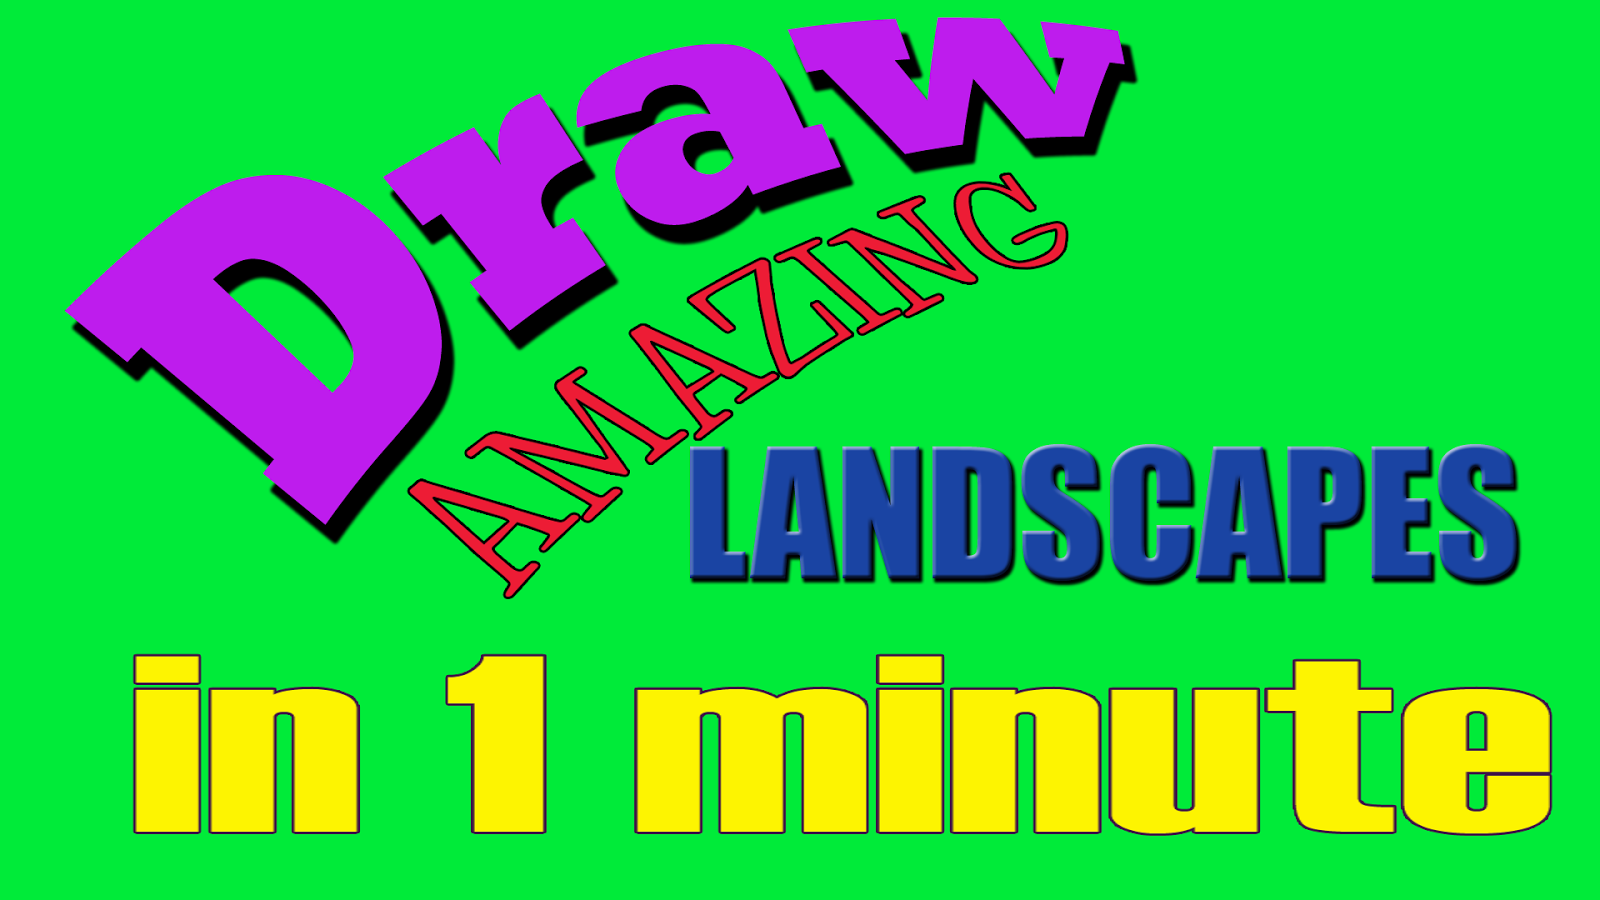 Drawing ideas for kids how to draw a landscape in less Simple drawing ideas for kids